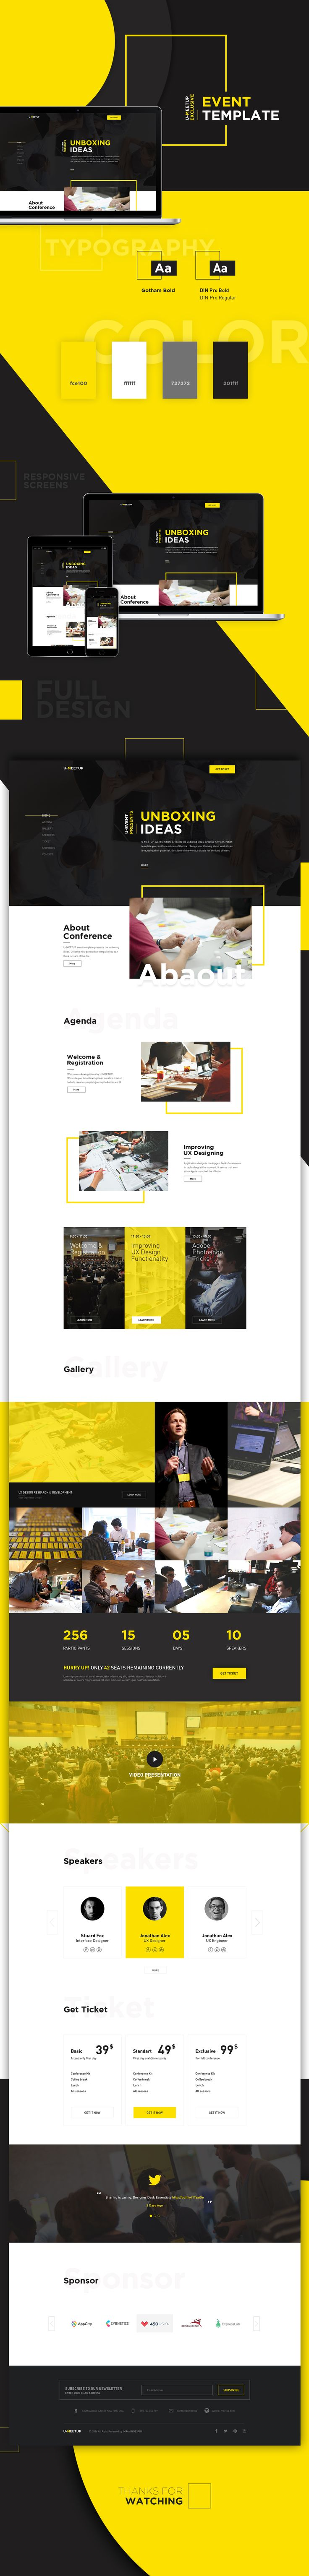 U-MEETUP - Event and Conference Template https://www.behance.net/gallery/40181689/U-MEETUP-Event-and-Conference-Template?